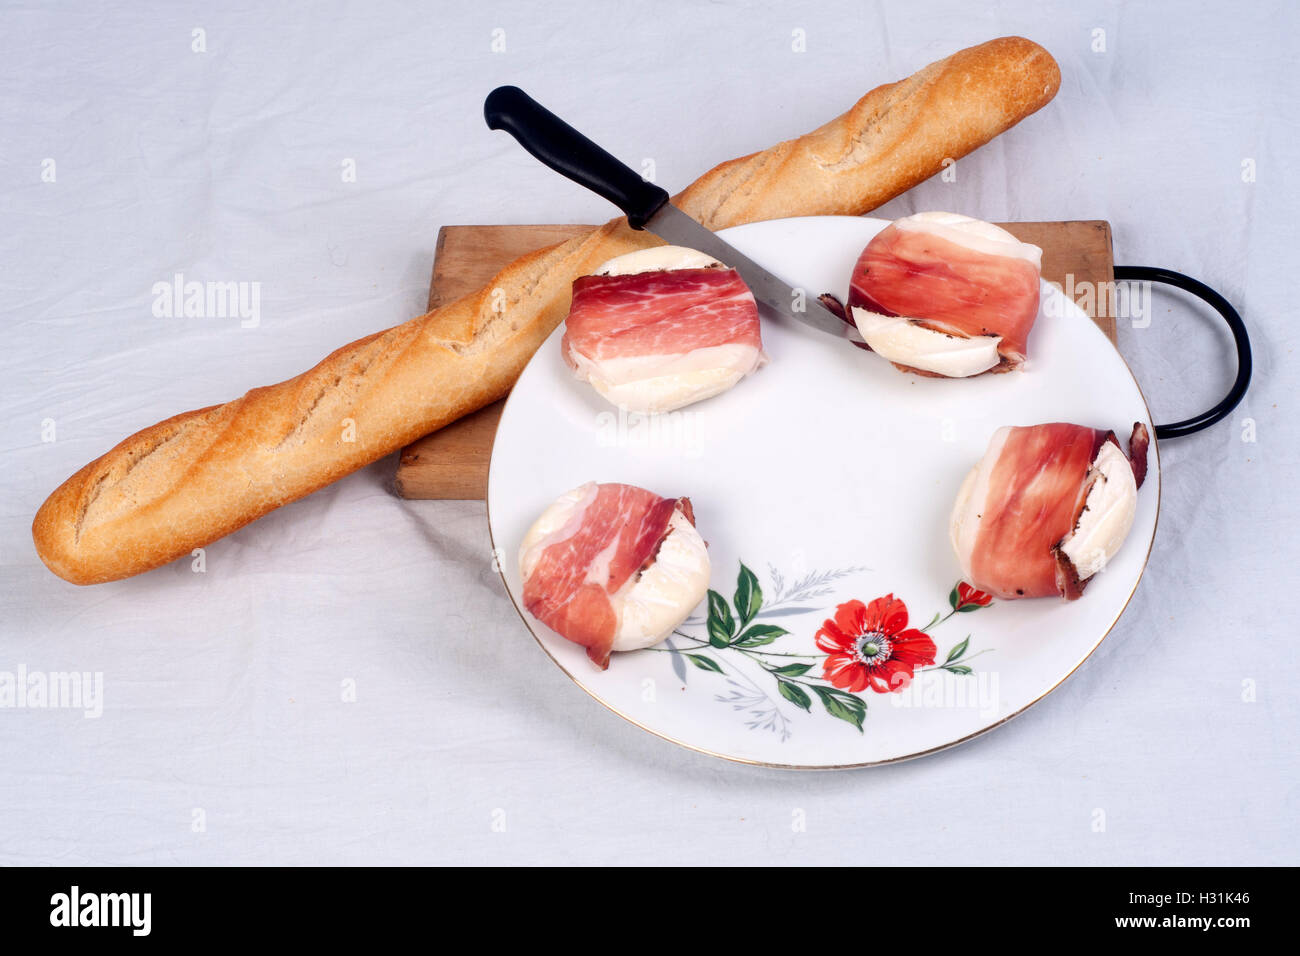 Fresh chese and baguette on display on a cutting board - Stock Image